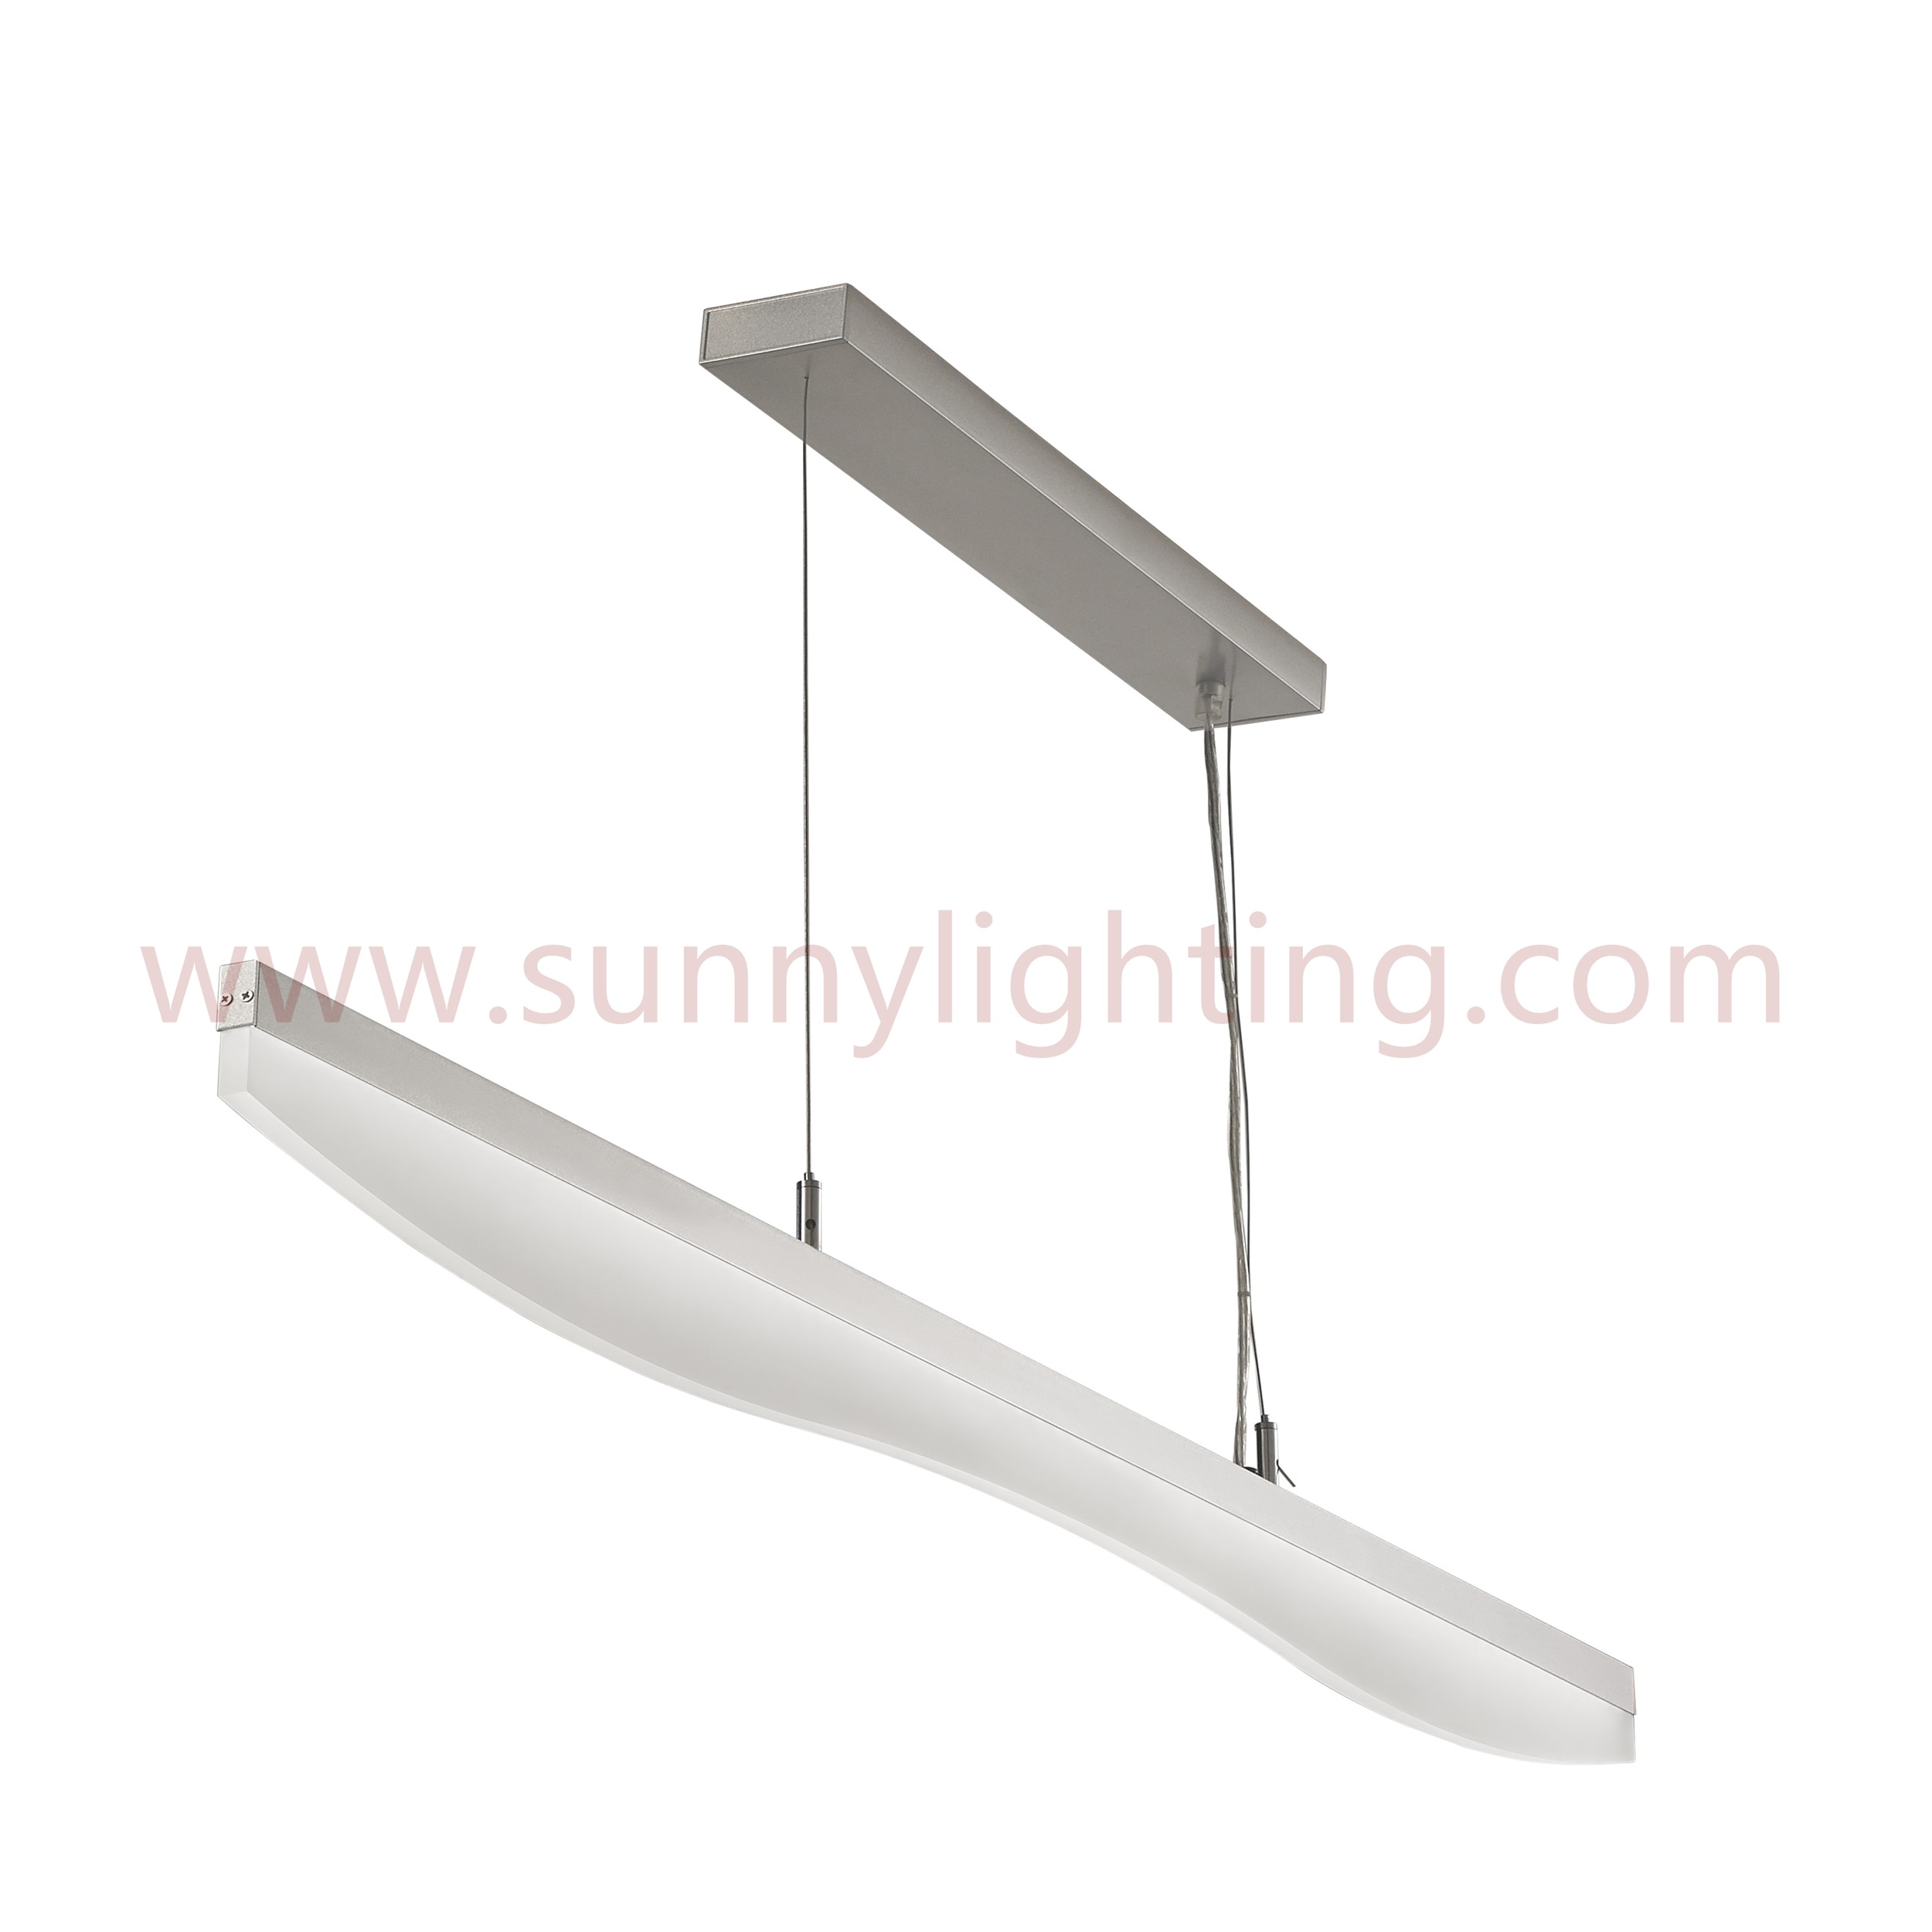 LED Linear Light 10.8W/14.4W/18W LED-039B